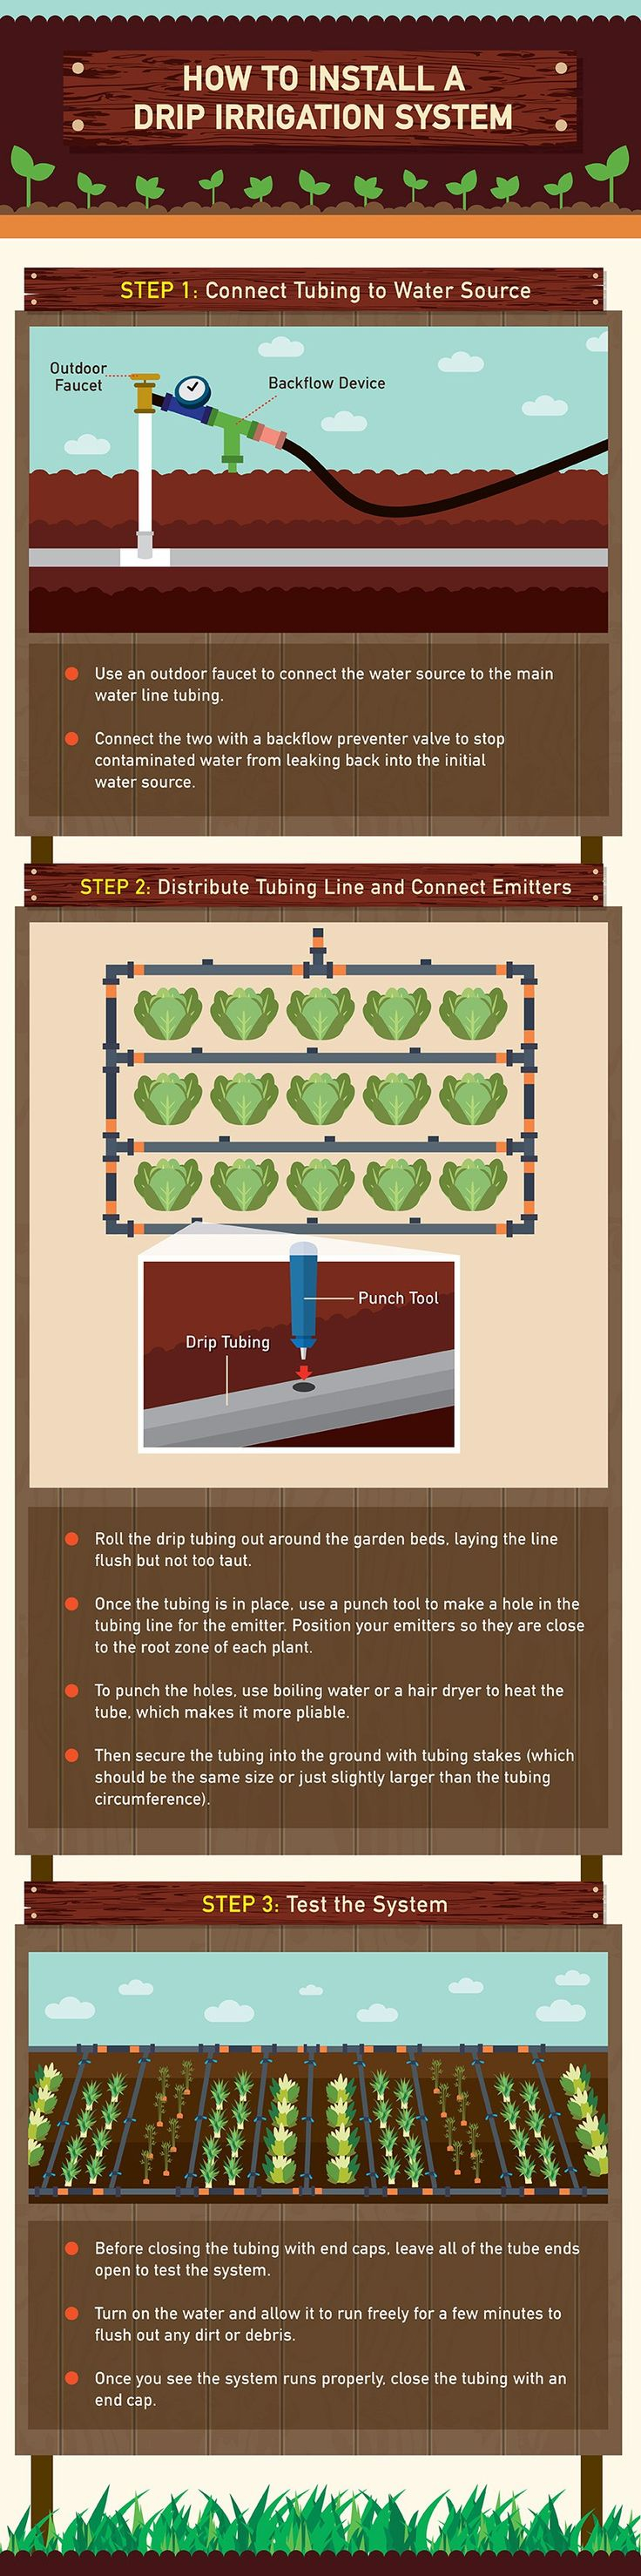 17 best irrigation images on pinterest irrigation pipes and pipes